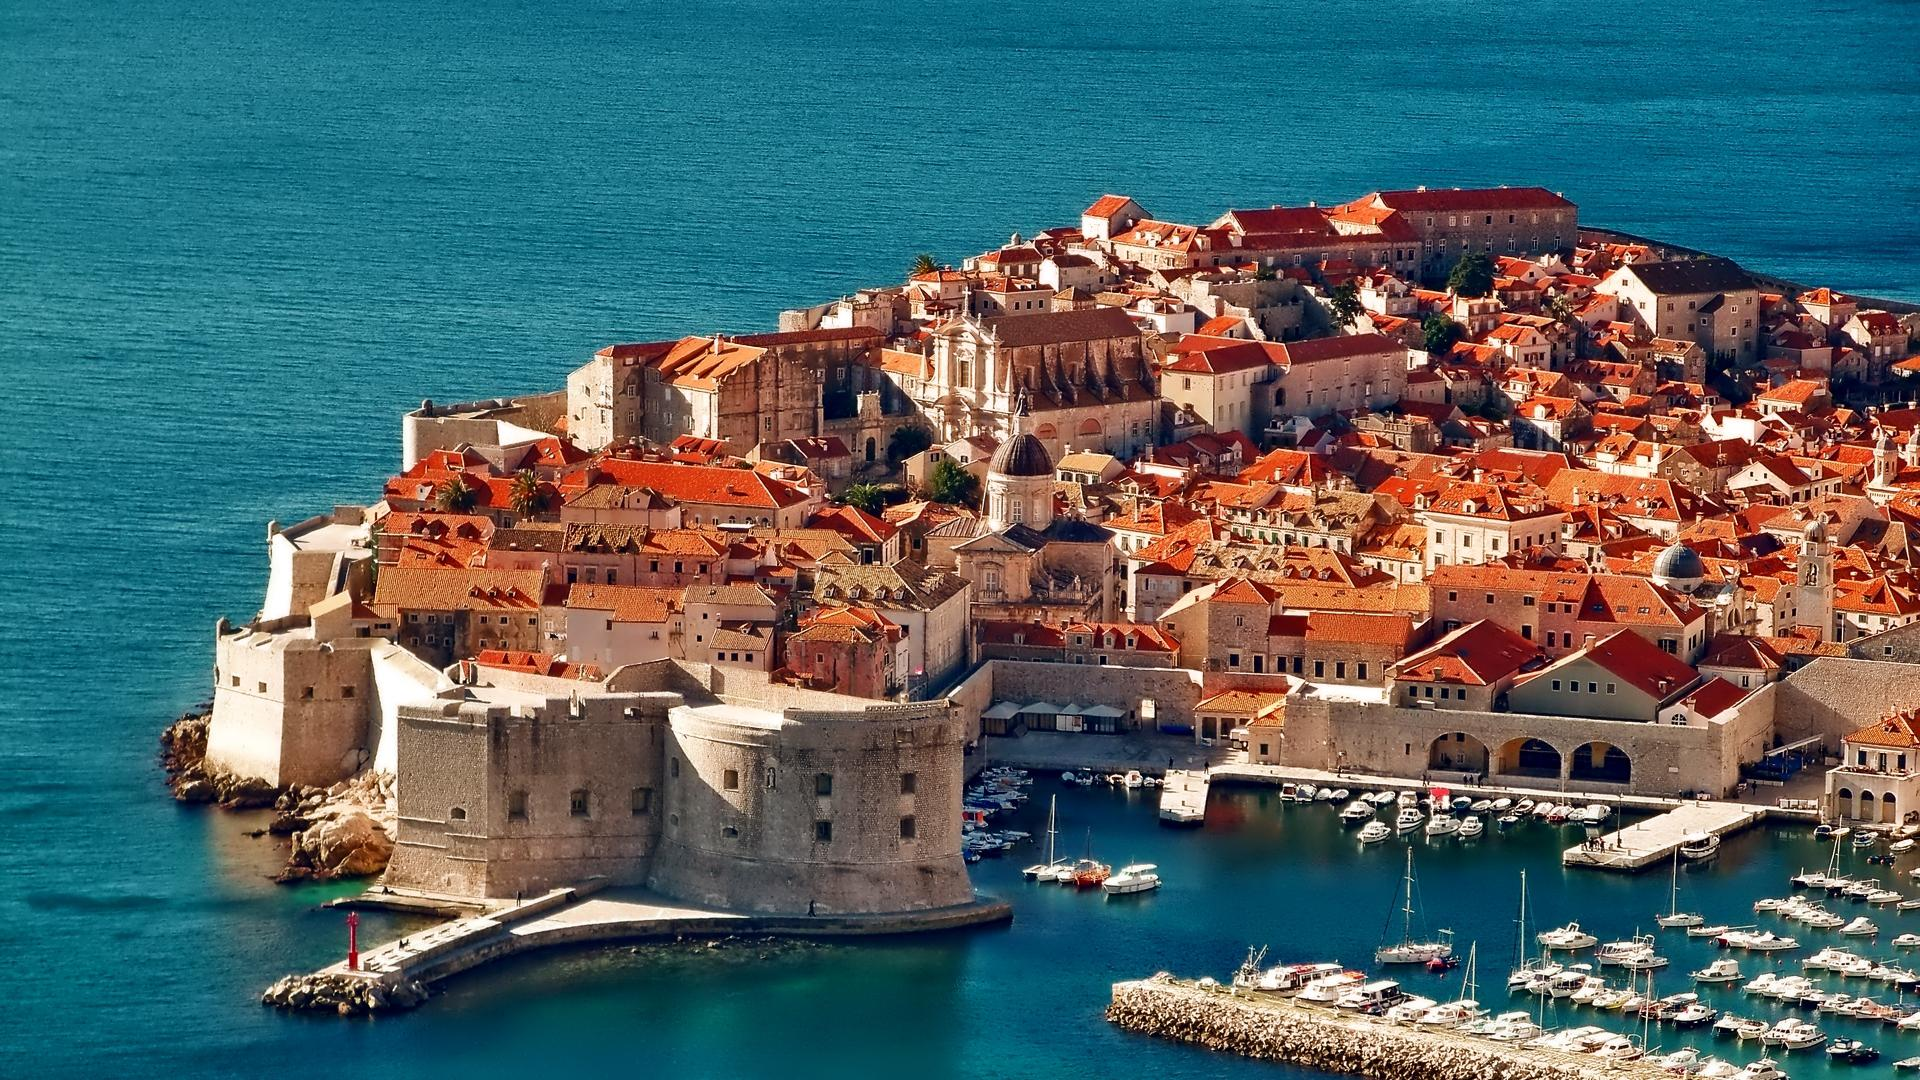 Zagreb Dubrovnik Online Flights Booking From To Dubrovnik Croatia Avia Lt